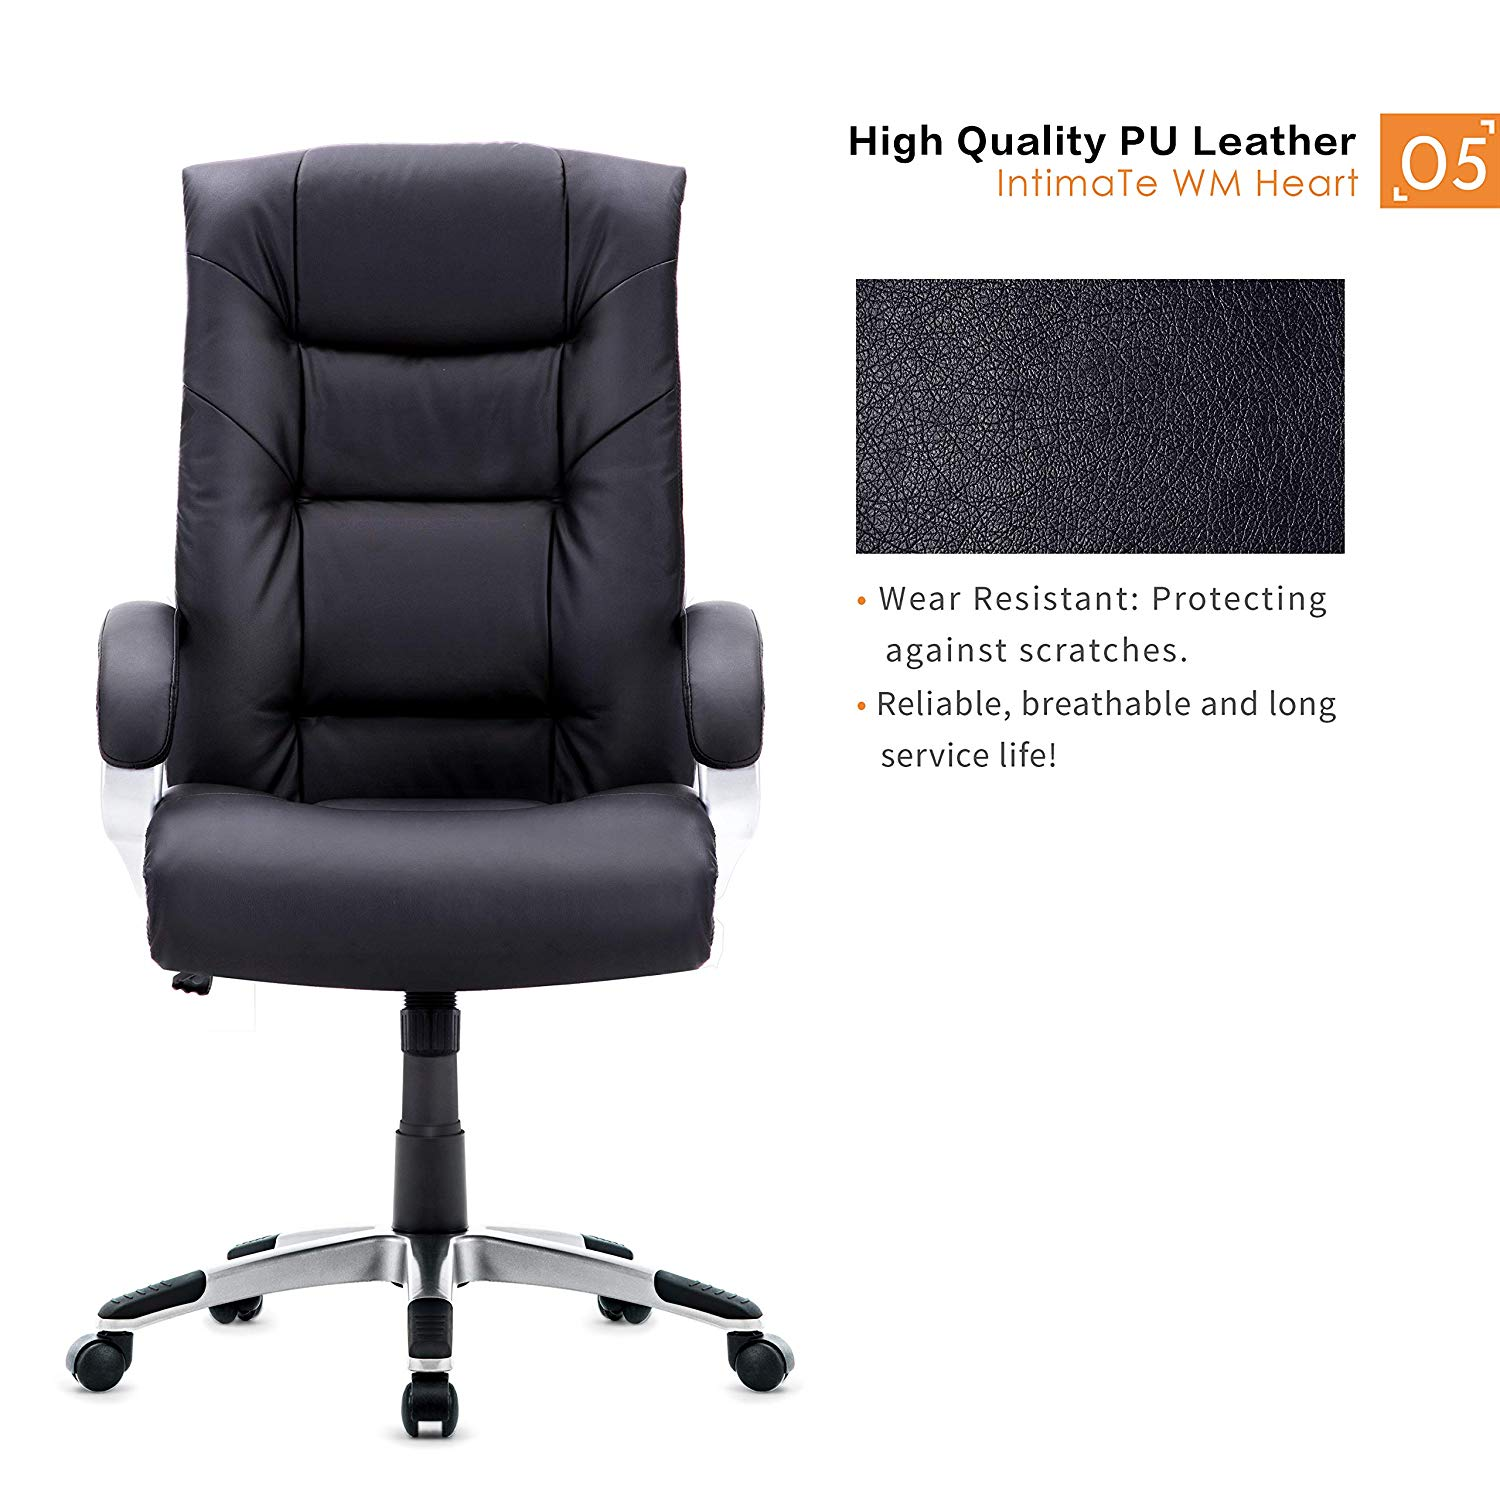 Groovy High Back Executive Office Chair Faux Leather Large Seat Computer Chair Ergonomic Design Adjustable Seat Height Wcg De Short Links Chair Design For Home Short Linksinfo